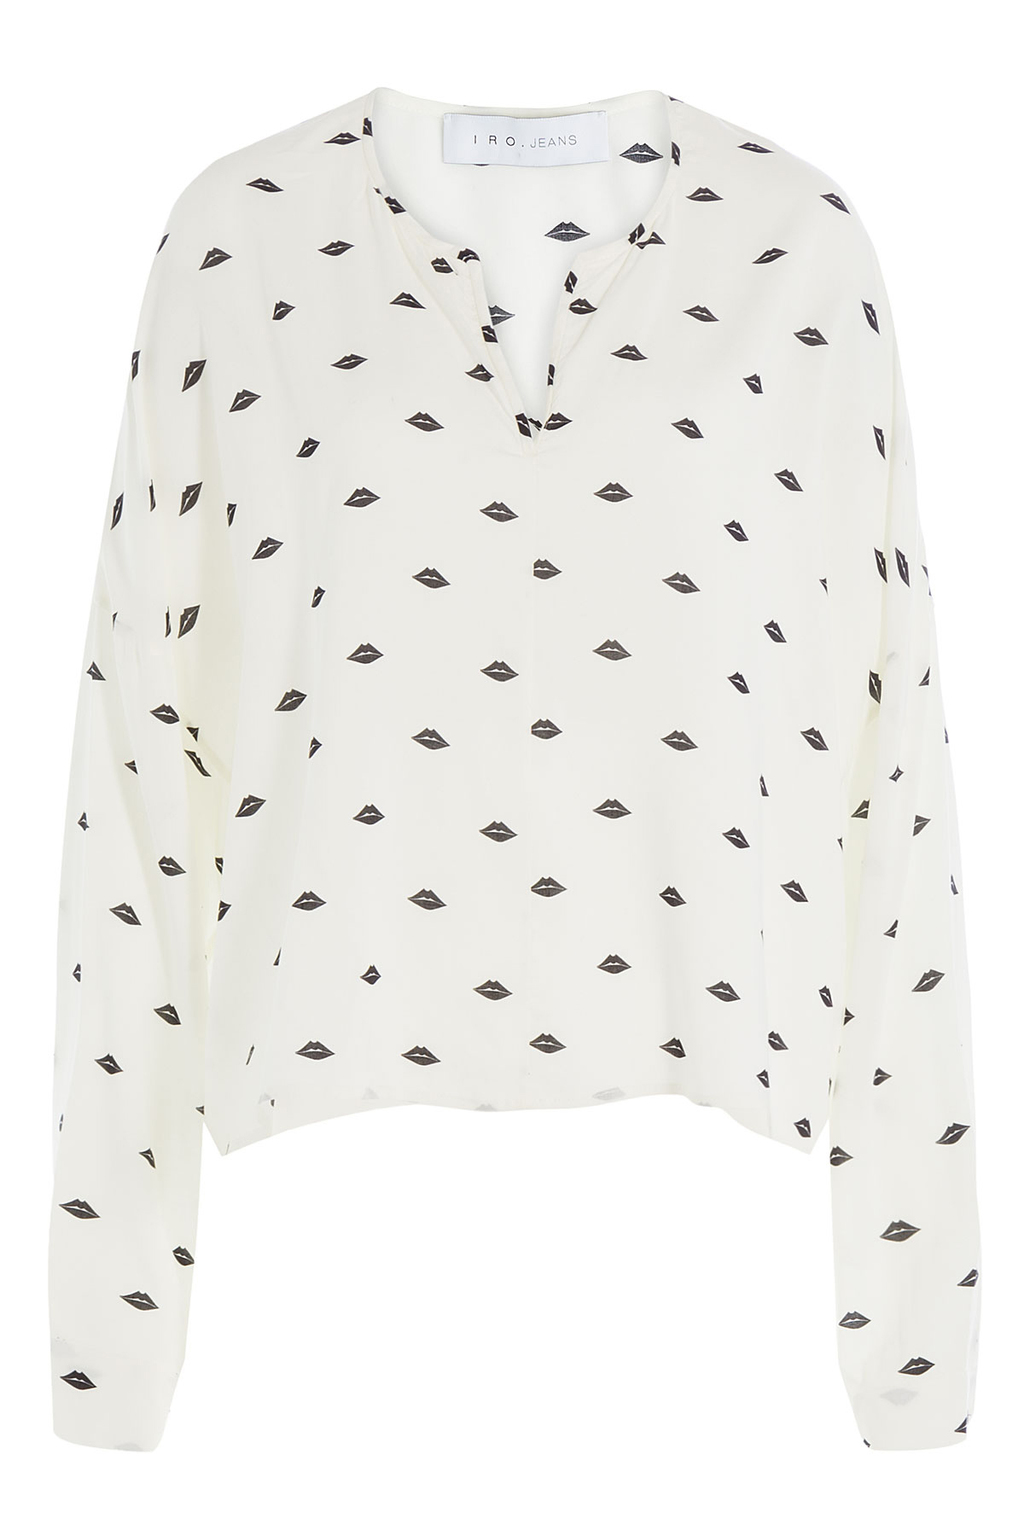 Printed Blouse - neckline: v-neck; style: blouse; predominant colour: white; secondary colour: navy; occasions: casual, creative work; length: standard; fibres: cotton - 100%; fit: loose; sleeve length: long sleeve; sleeve style: standard; texture group: cotton feel fabrics; pattern type: fabric; pattern size: standard; pattern: patterned/print; season: a/w 2016; wardrobe: highlight